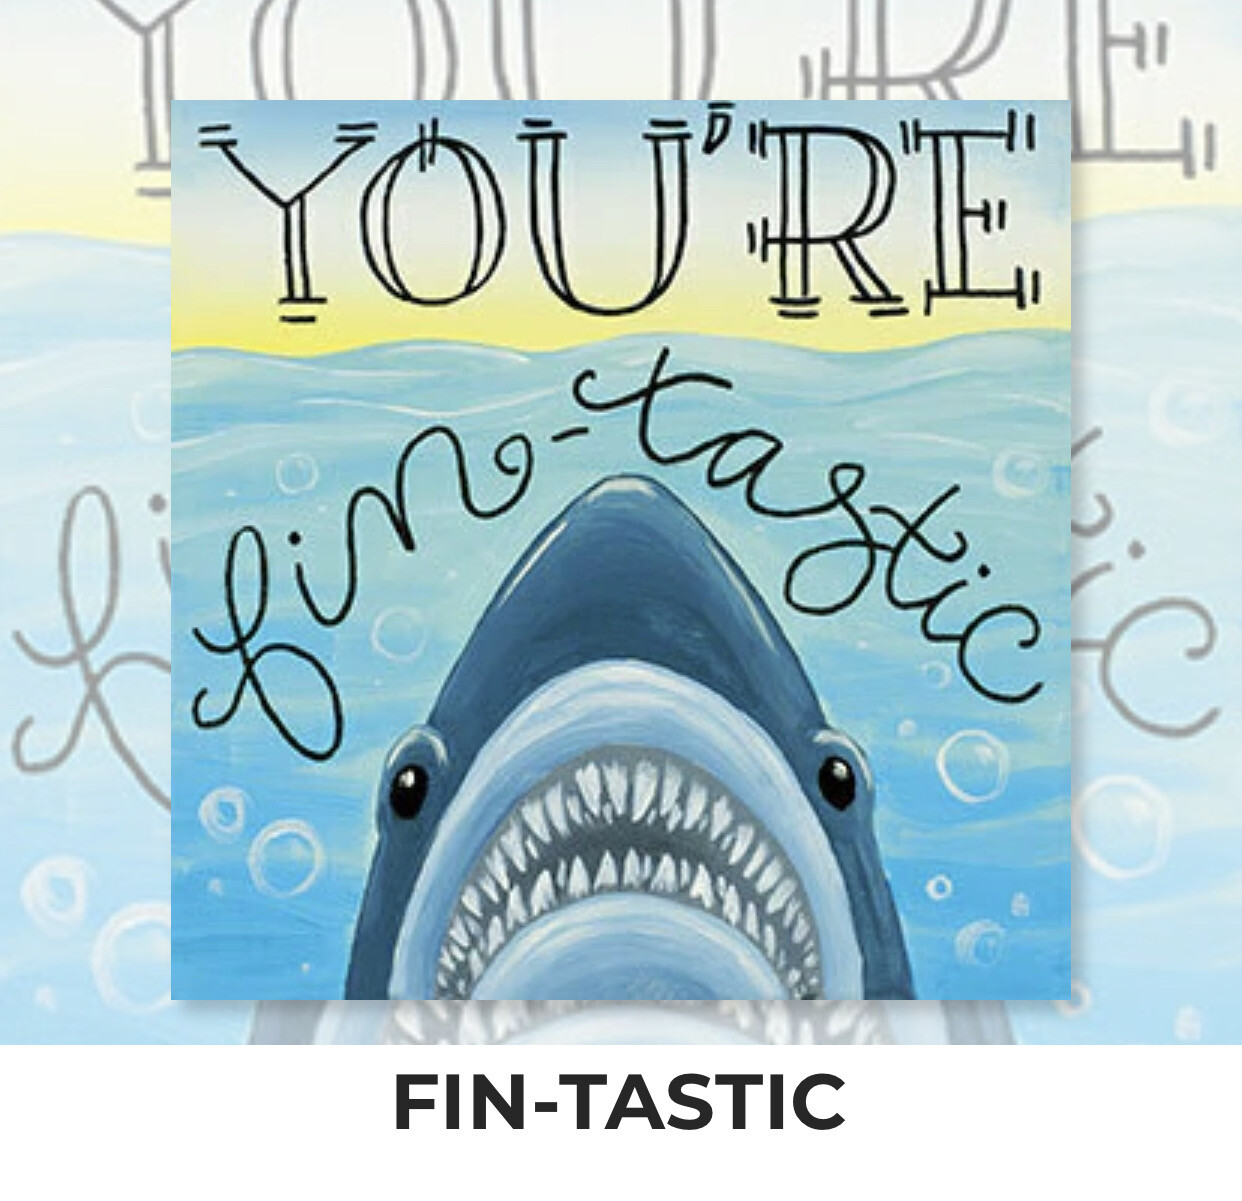 You're Fin-tastic - Shark KIDS Acrylic Paint On Canvas DIY Art Kit - 3 Week Special Order